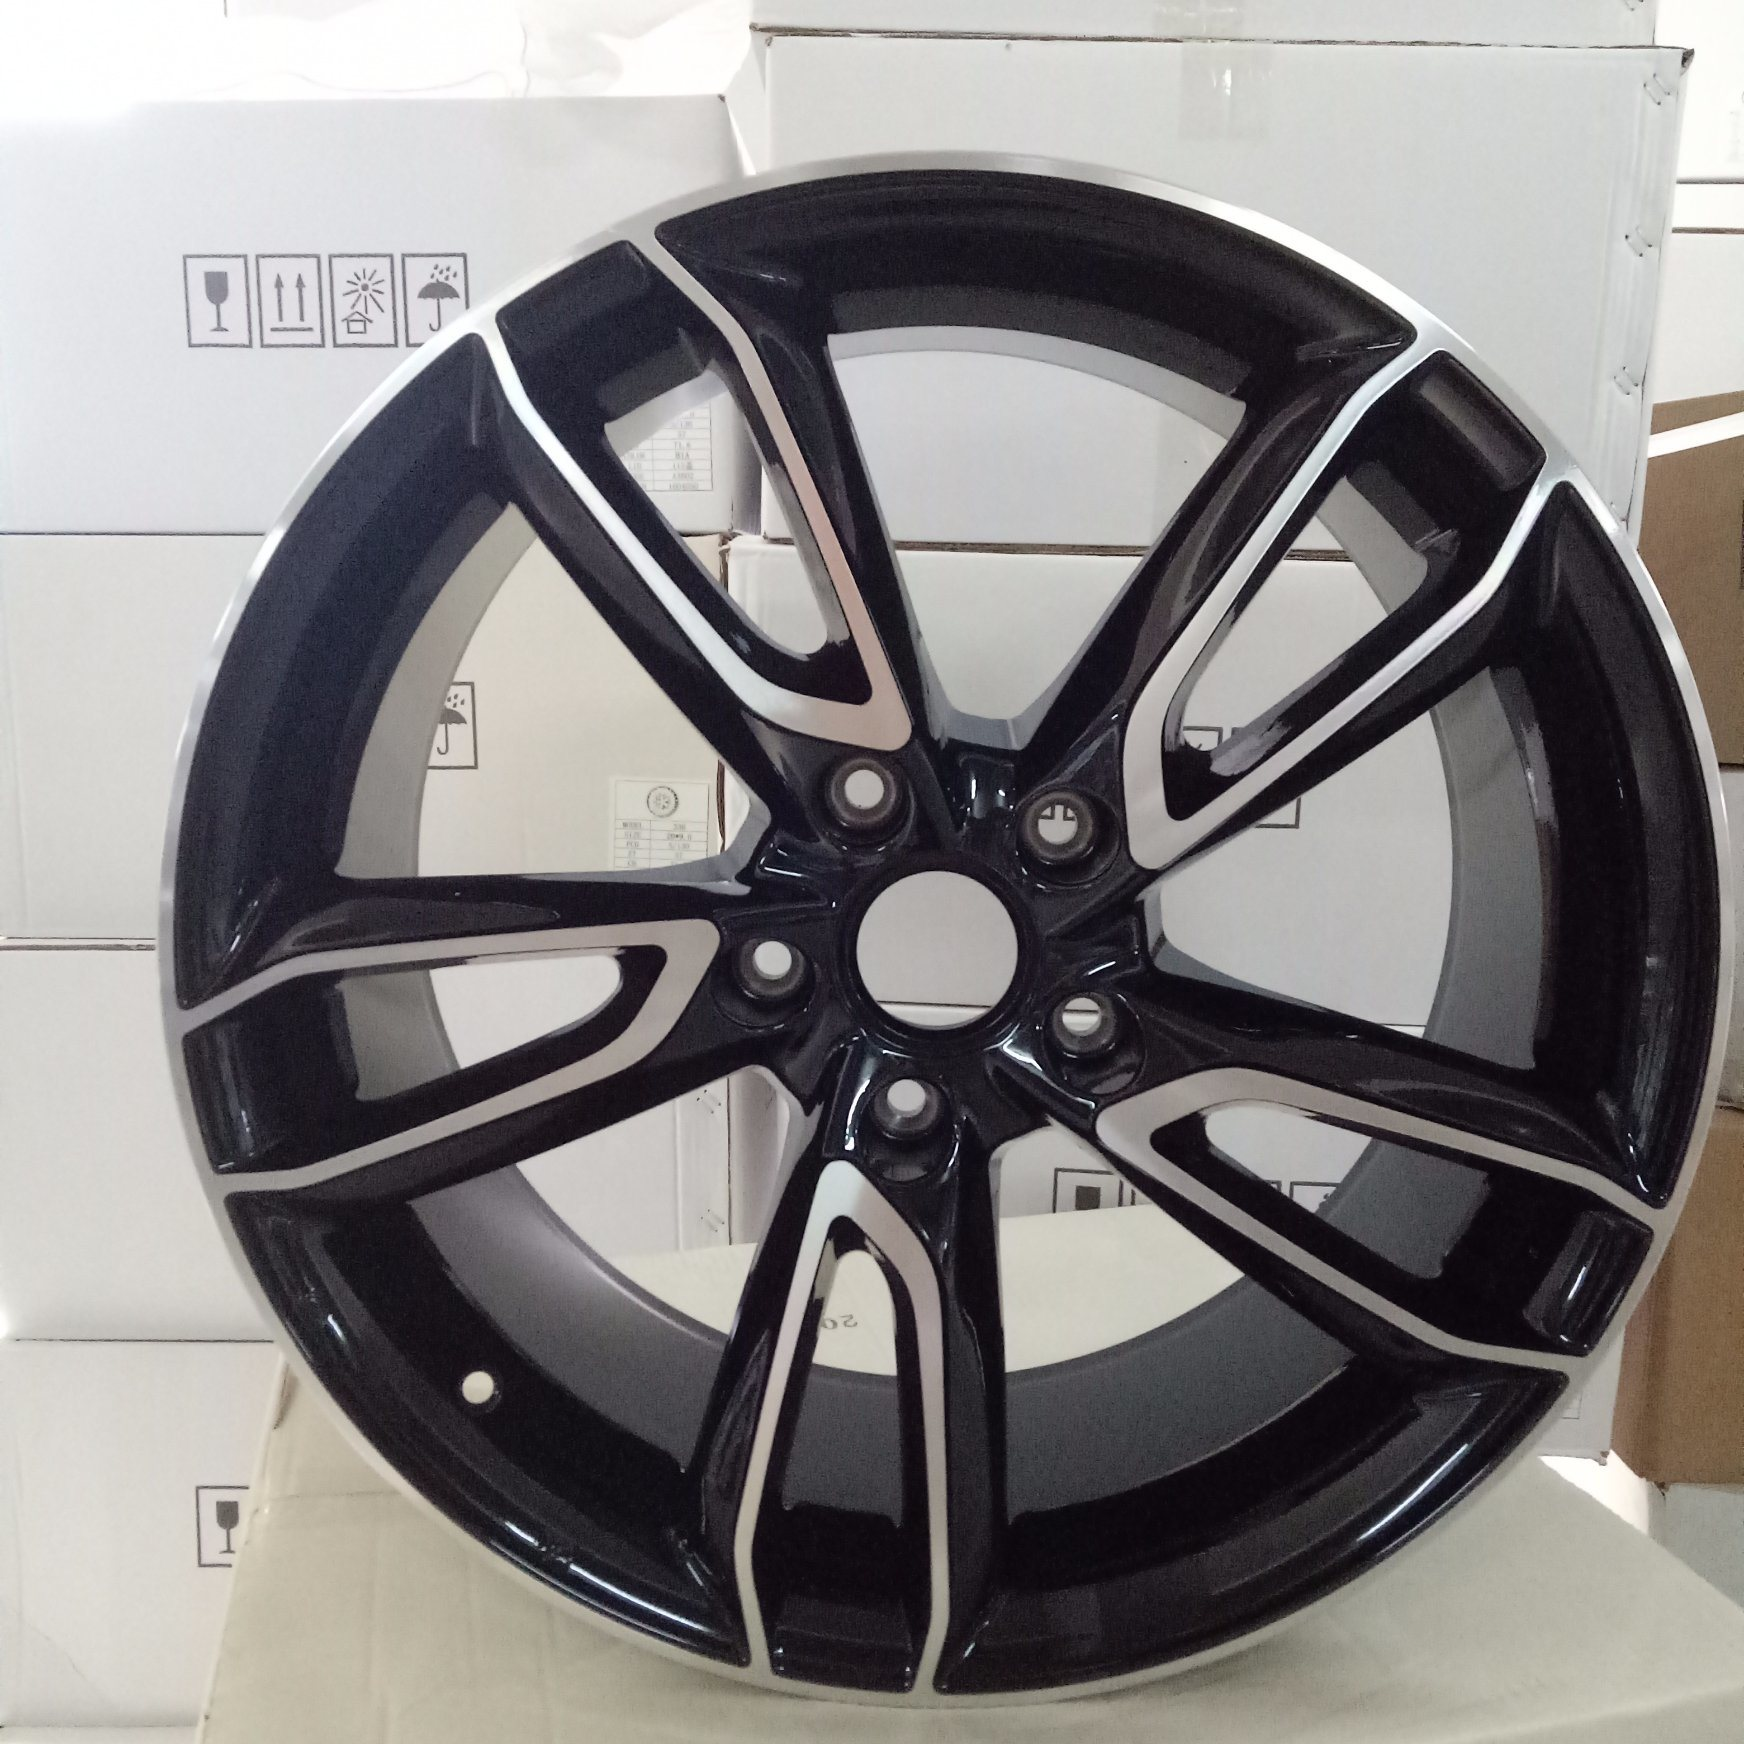 vmr gets project brakes volkswagen gti to vw car tires how our and rims wheels